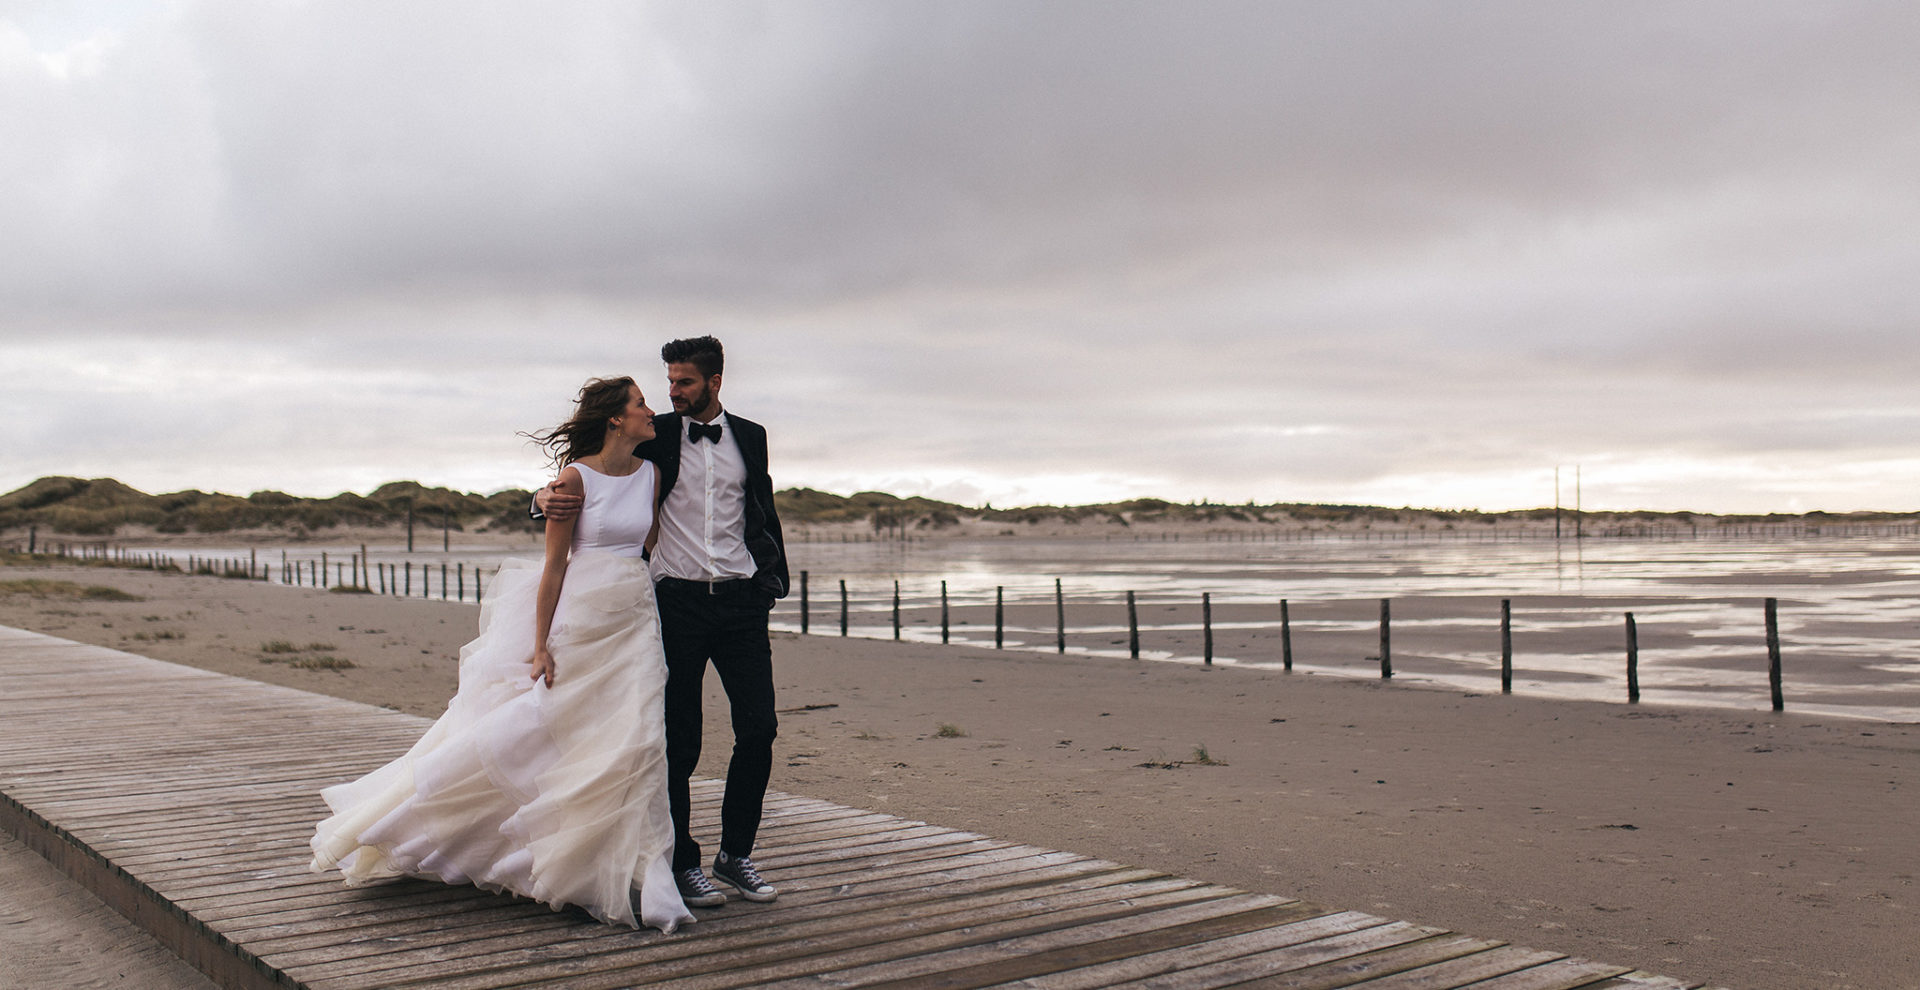 Destination elopement photographer-europa wedding photographer-beach wedding-elfenkleid bride-couture gown handmade